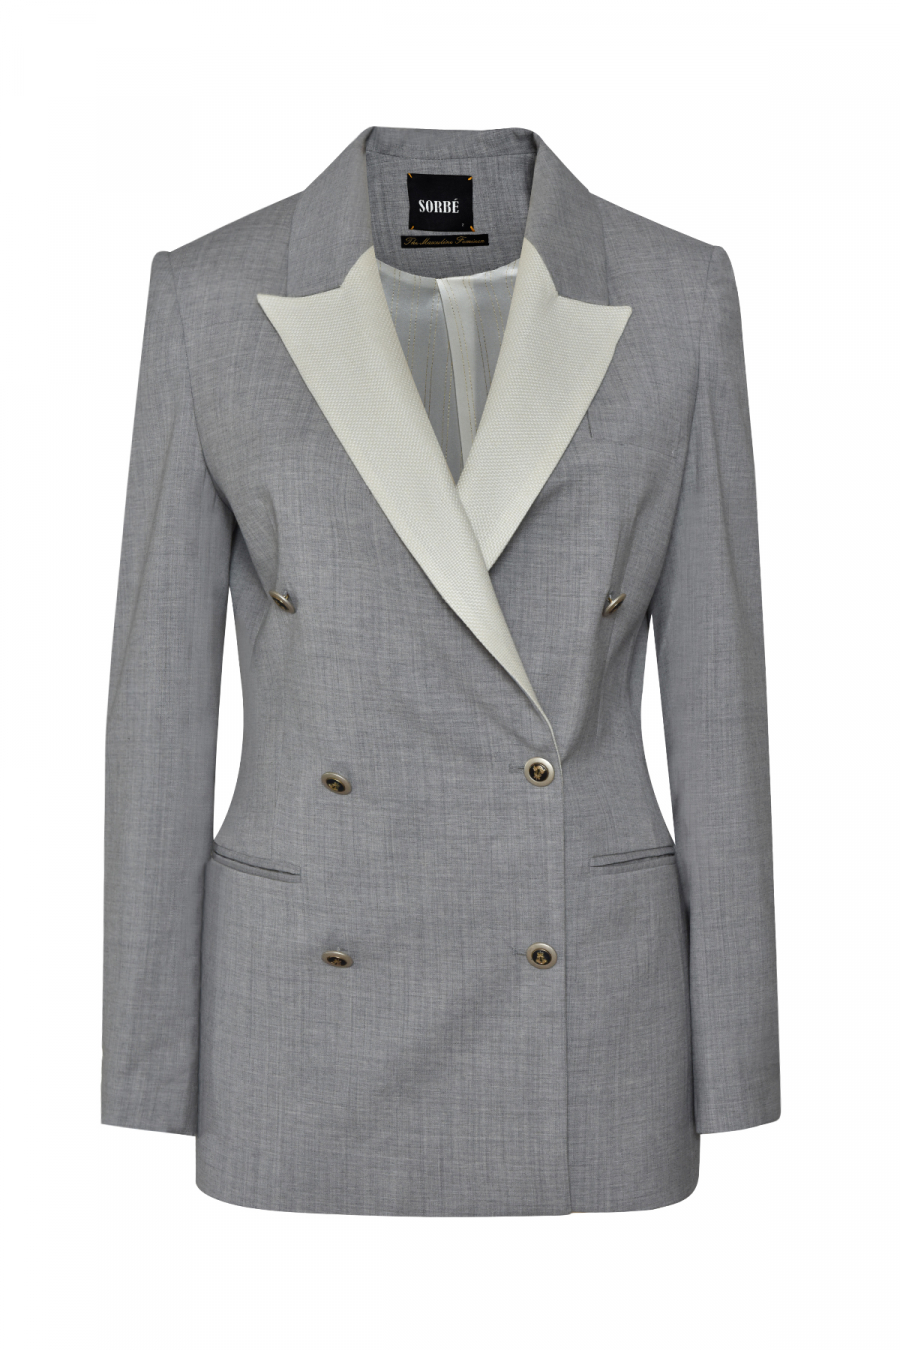 6 BUTTONS DOUBLE BREASTED GREY WHITE COLLAR